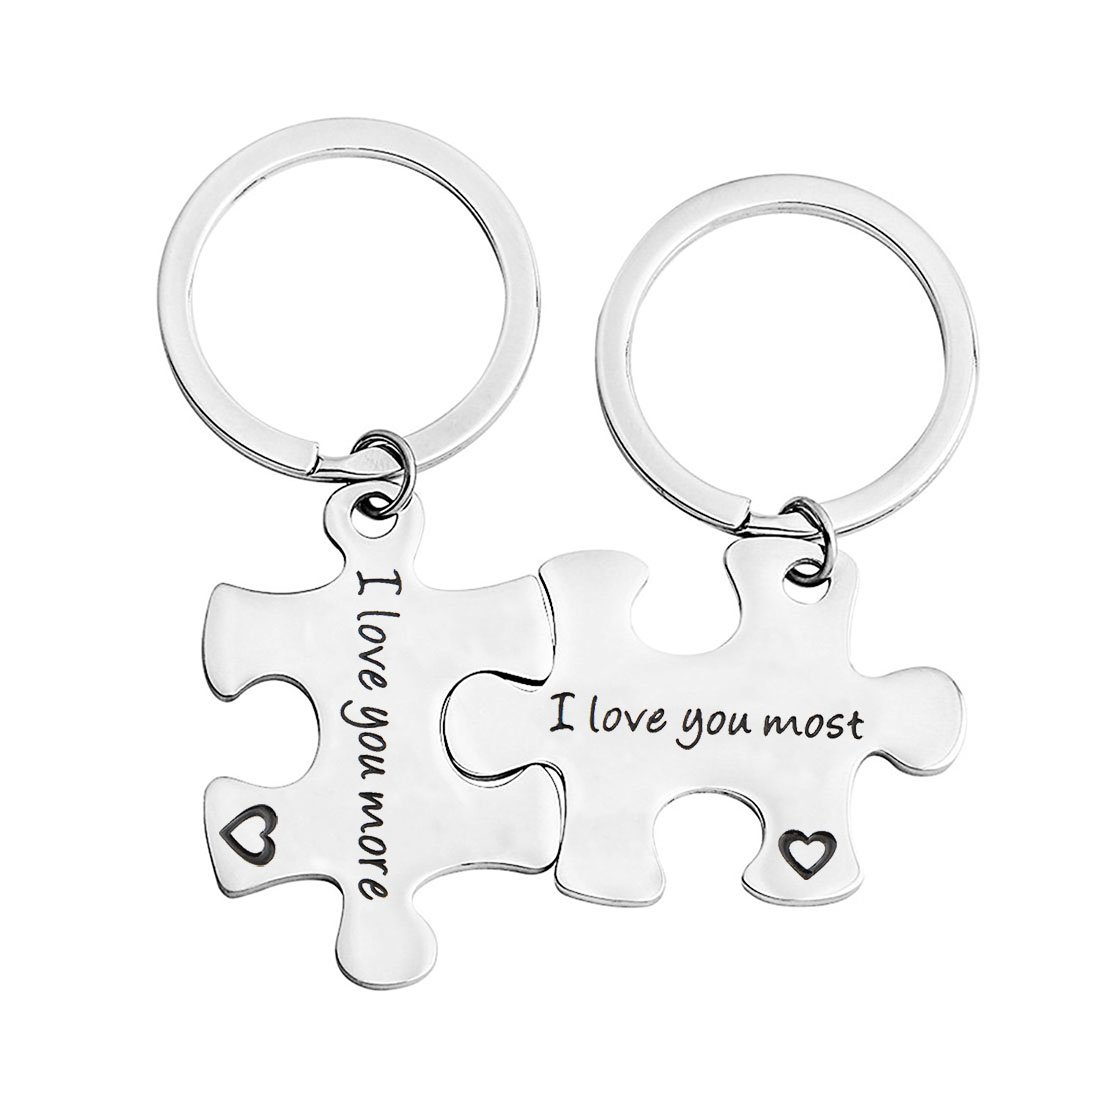 bobauna Stainless Steel I Love You More I Love You Most Puzzle Piece Keychain Set for Couples Mother Daughter (I love you more most)